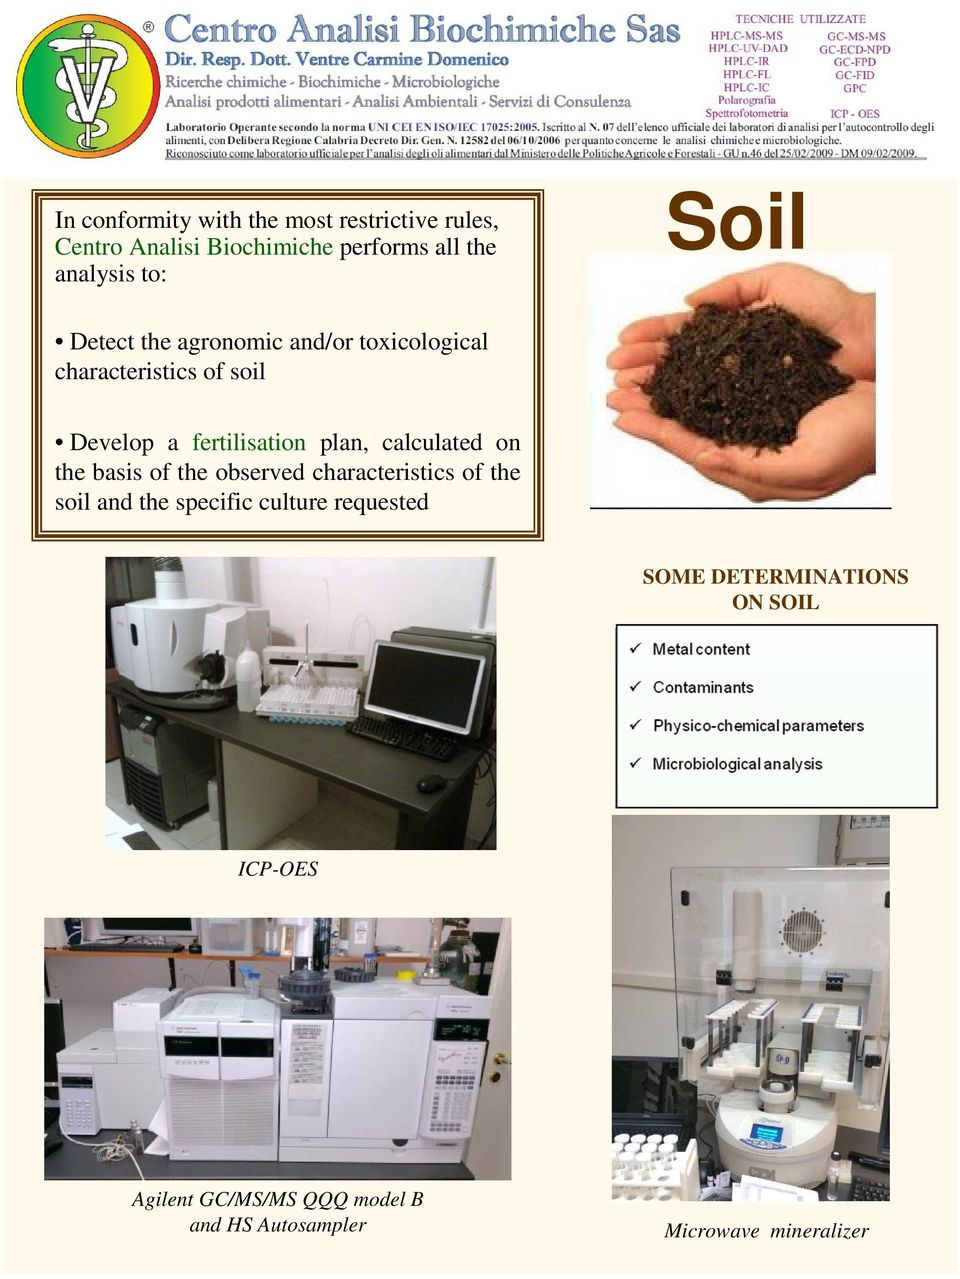 calculated on the basis of the observed characteristics of the soil and the specific culture requested